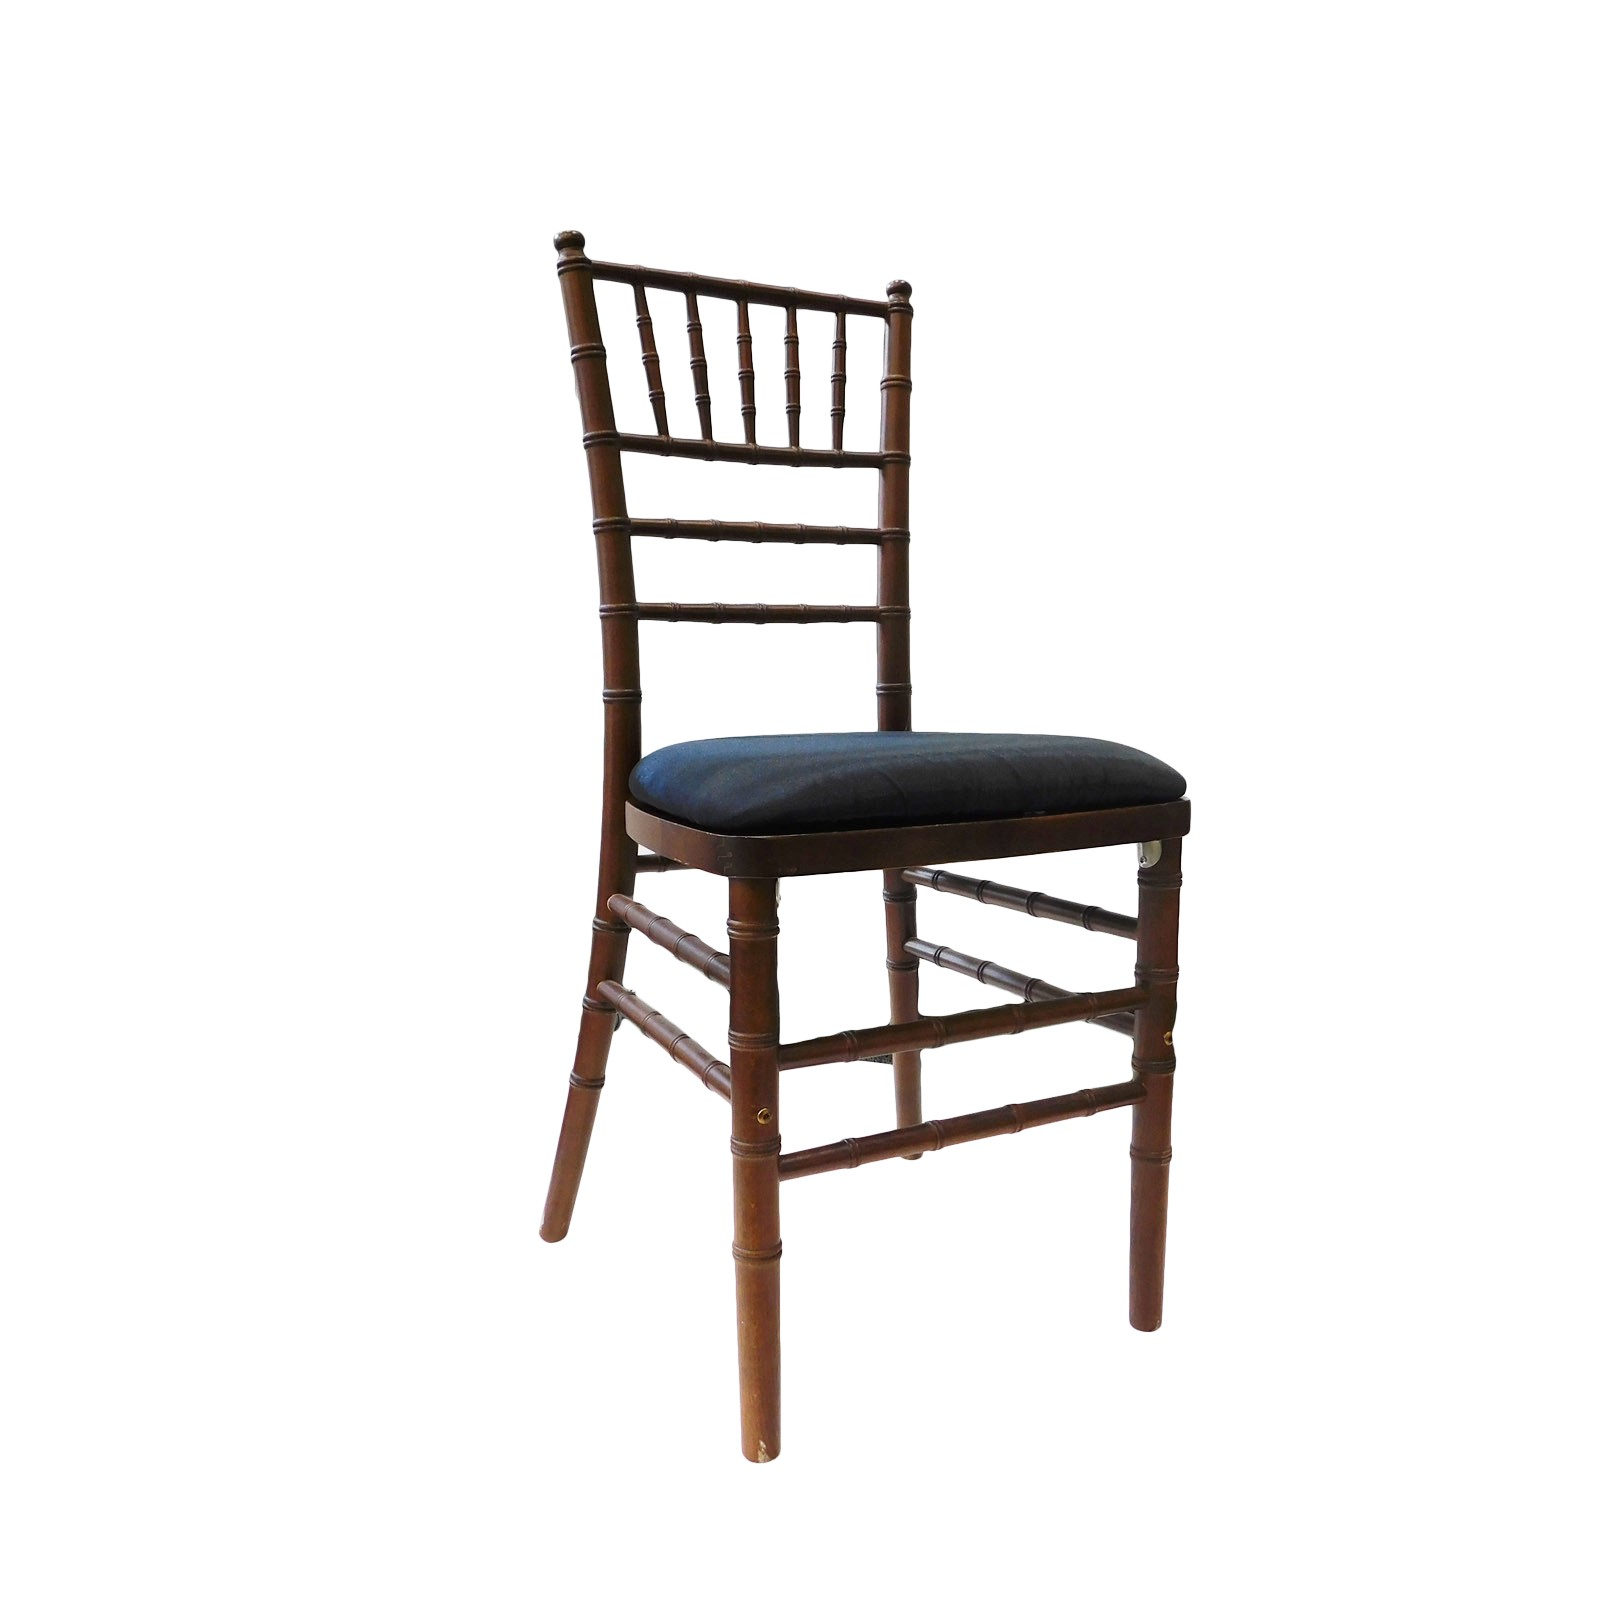 Chivary Chairs Chiavari Chairs